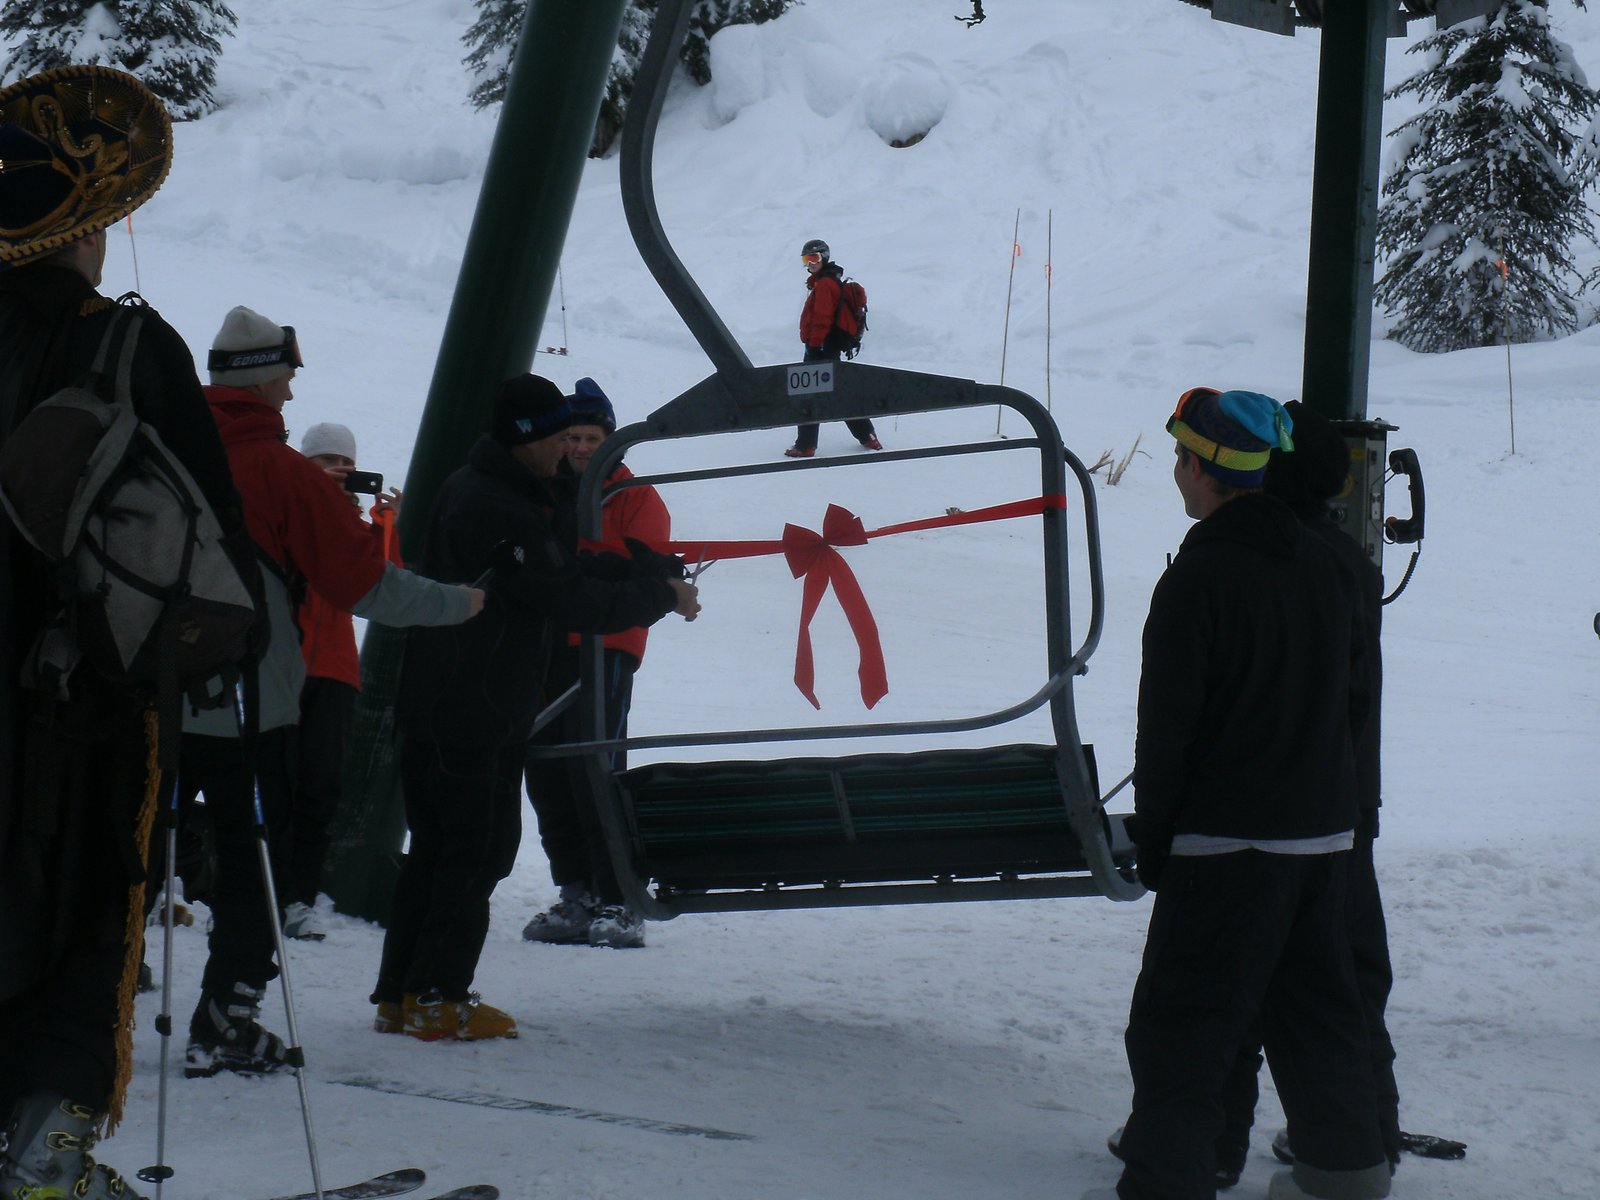 Opening of the glory chair at whitewater B.C.